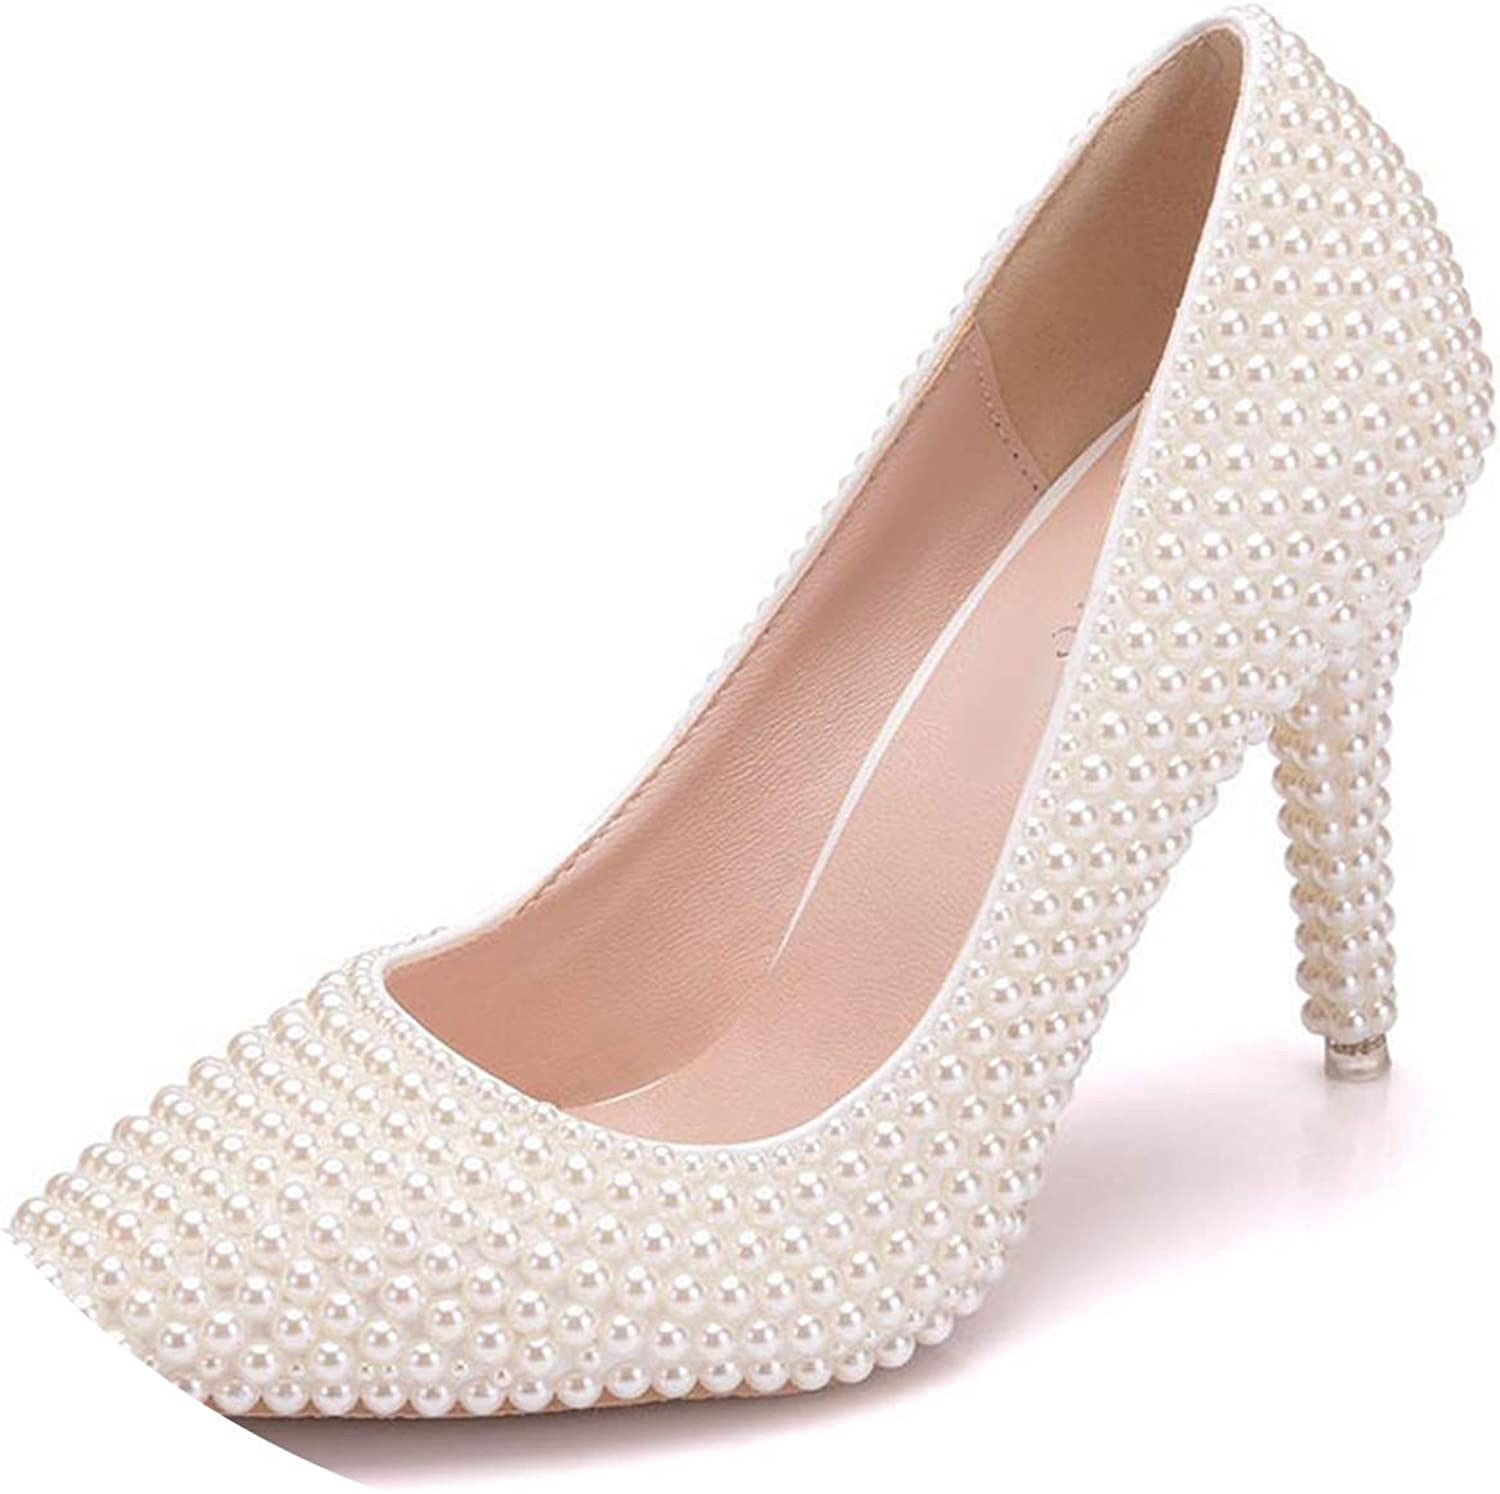 Sunny Doll 2019 Women High Heels Pumps Full Pearl Heeled White Wedding Party shoes Stiletto Beige Ladies shoes